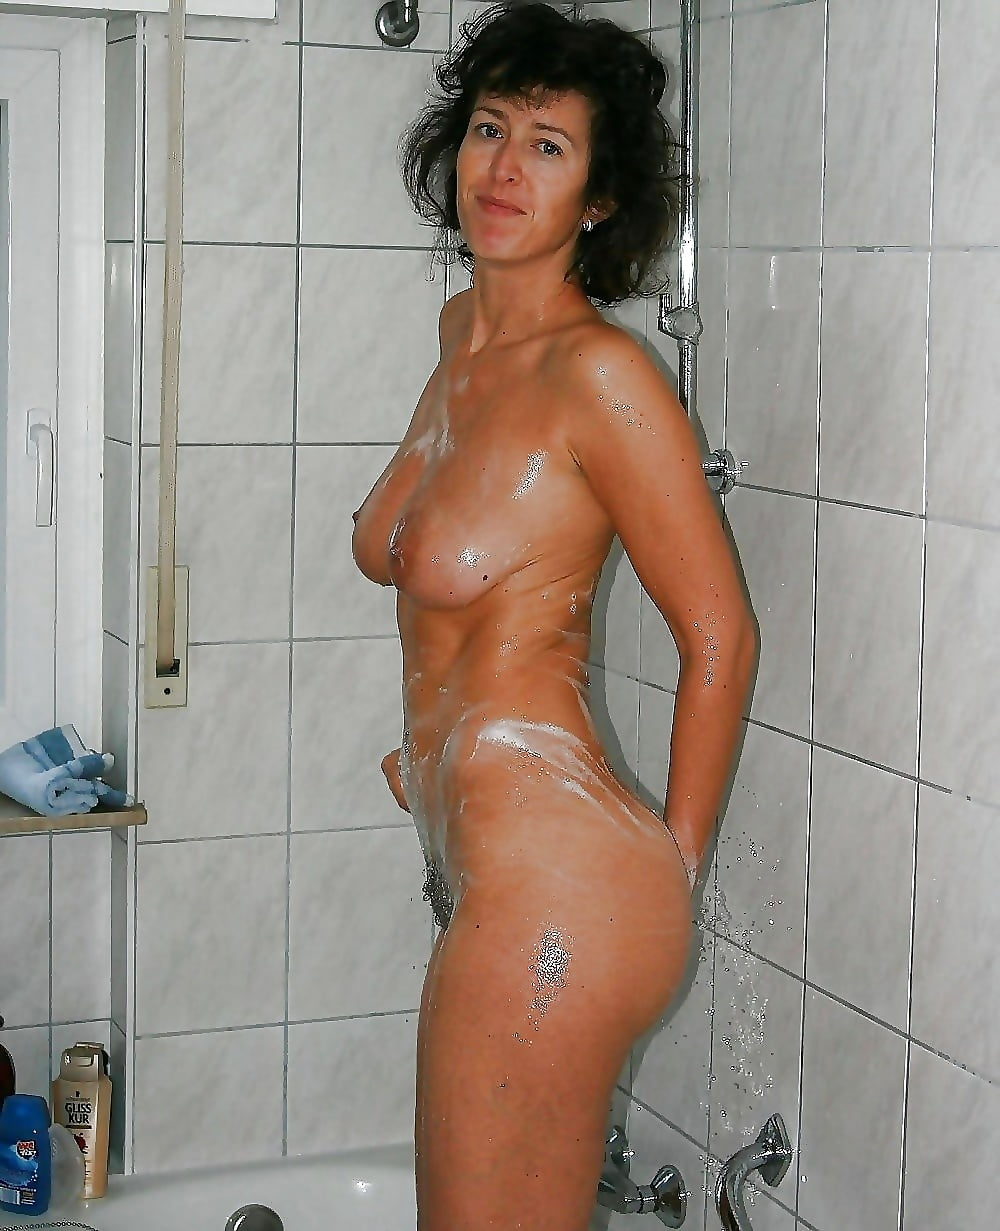 Sexy nude moms in the shower, hardcore porn granny gallery